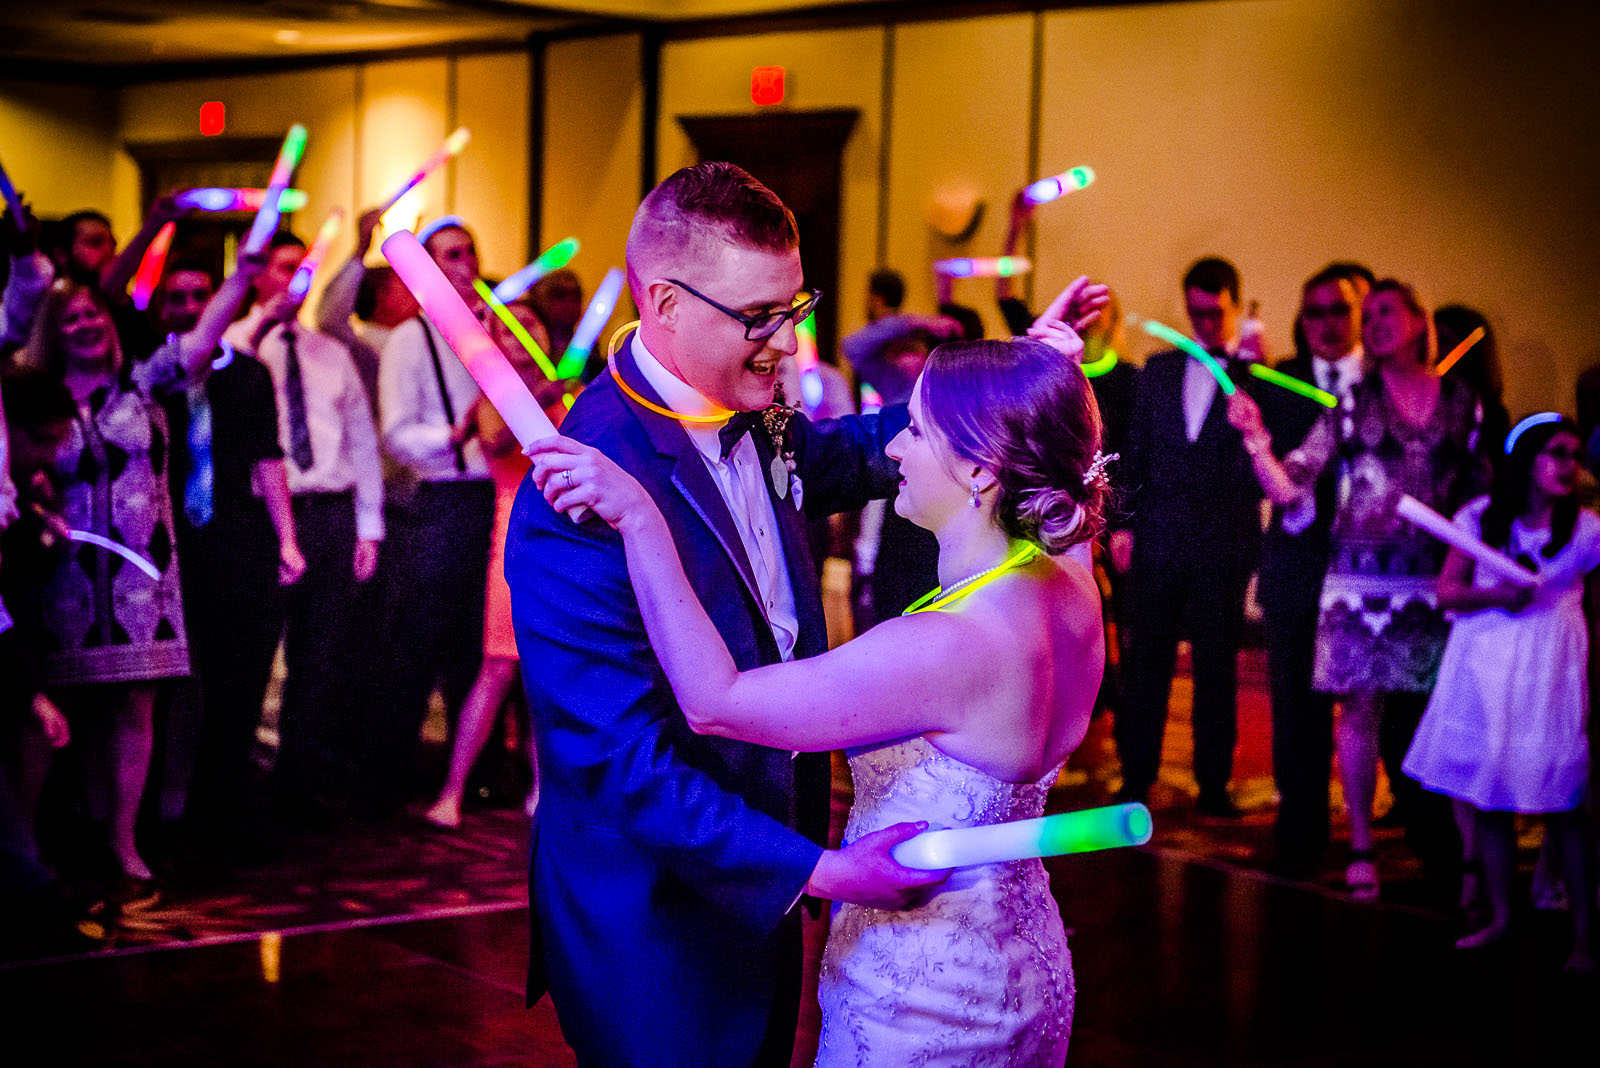 Eric_and_Christy_Photography_Blog_Wedding_Erica_Mike-88